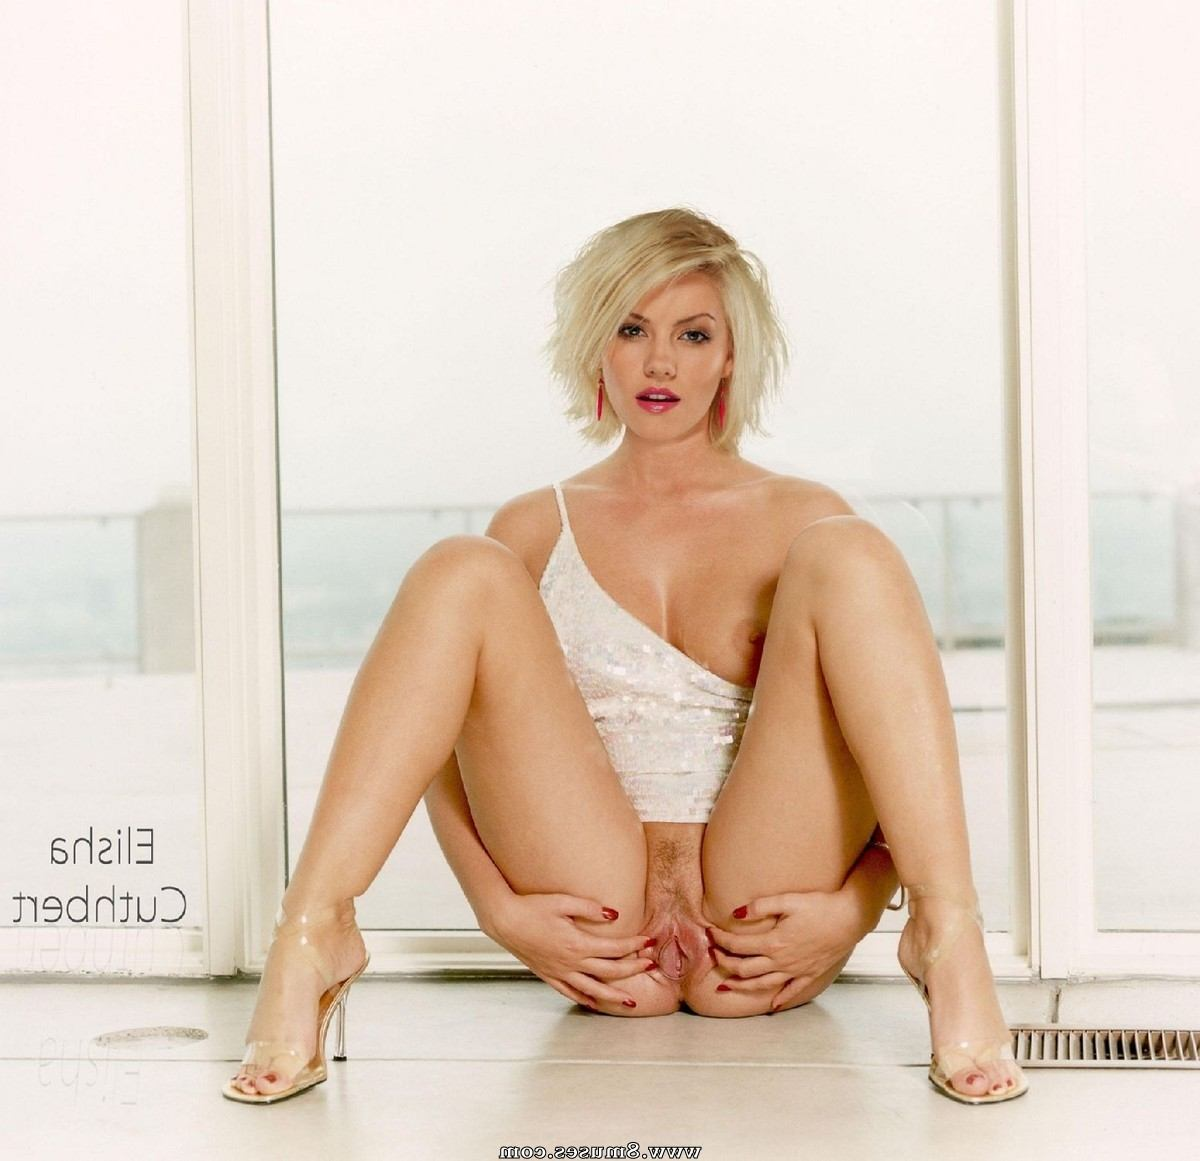 Fake-Celebrities-Sex-Pictures/Elisha-Cuthbert Elisha_Cuthbert__8muses_-_Sex_and_Porn_Comics_152.jpg